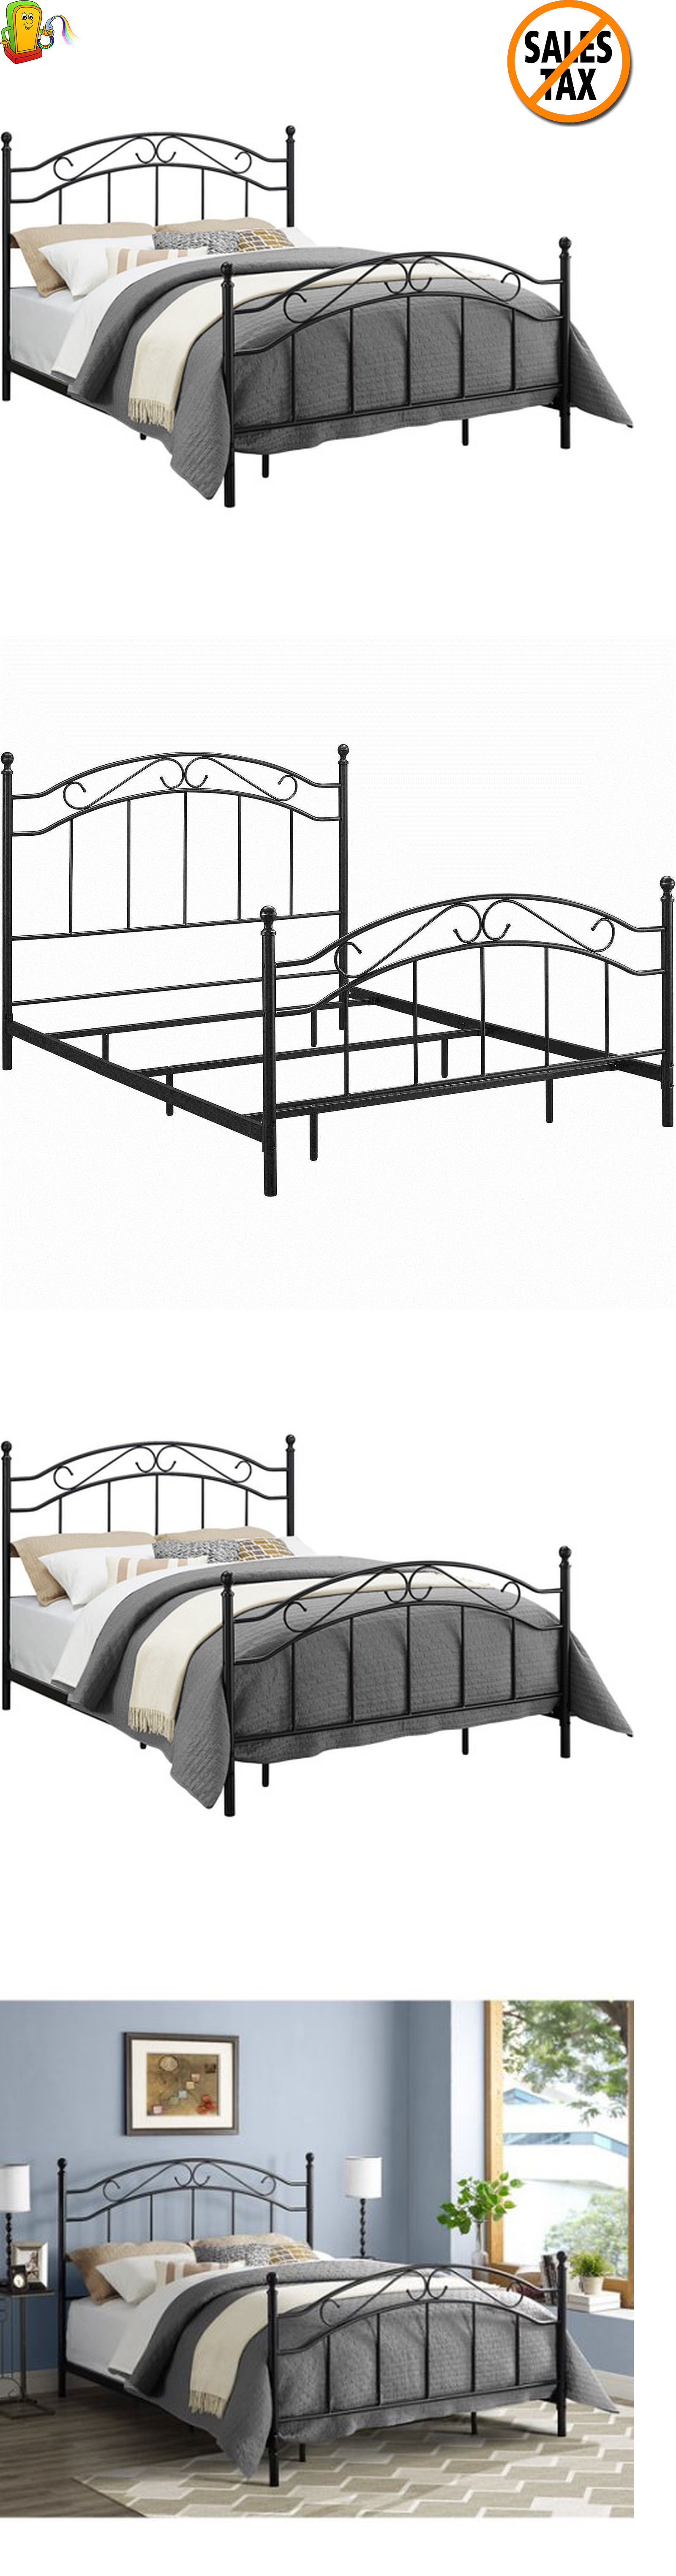 beds and bed frames 175758 queen size metal bed frame headboard footboard contemporary bedroom furniture - Ebay Bed Frames